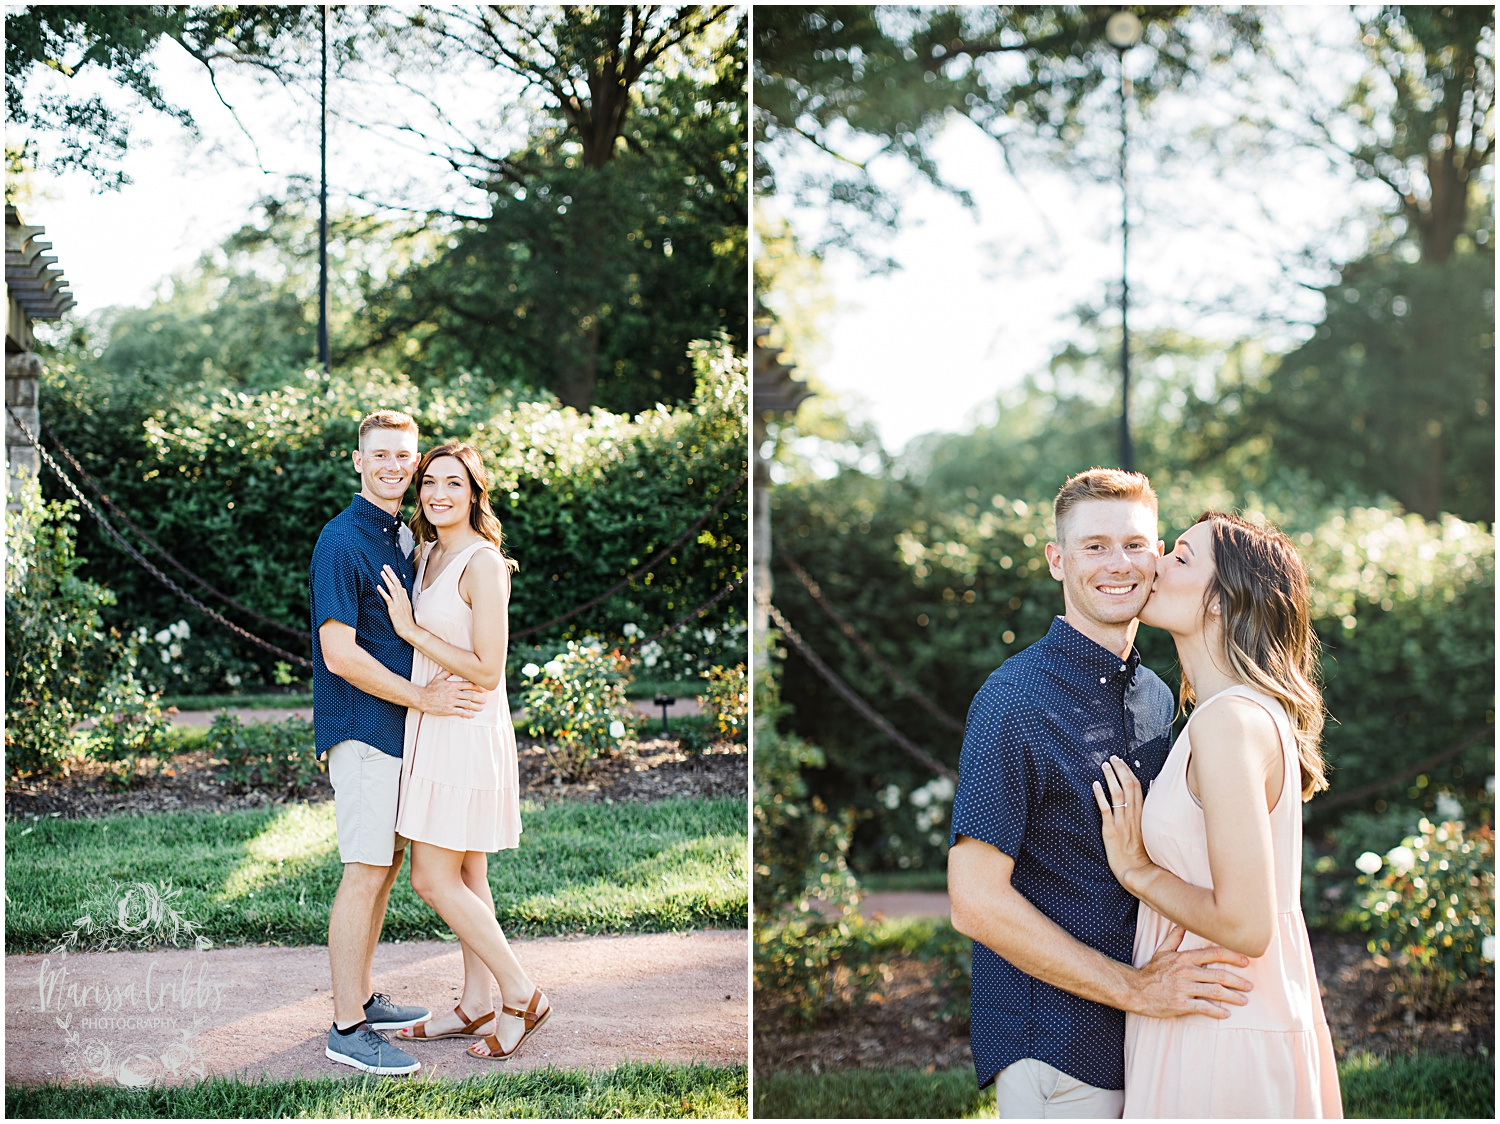 KELSEY & MICHAEL ENGAGEMENT BLOG | MARISSA CRIBBS PHOTOGRAPHY_8438.jpg